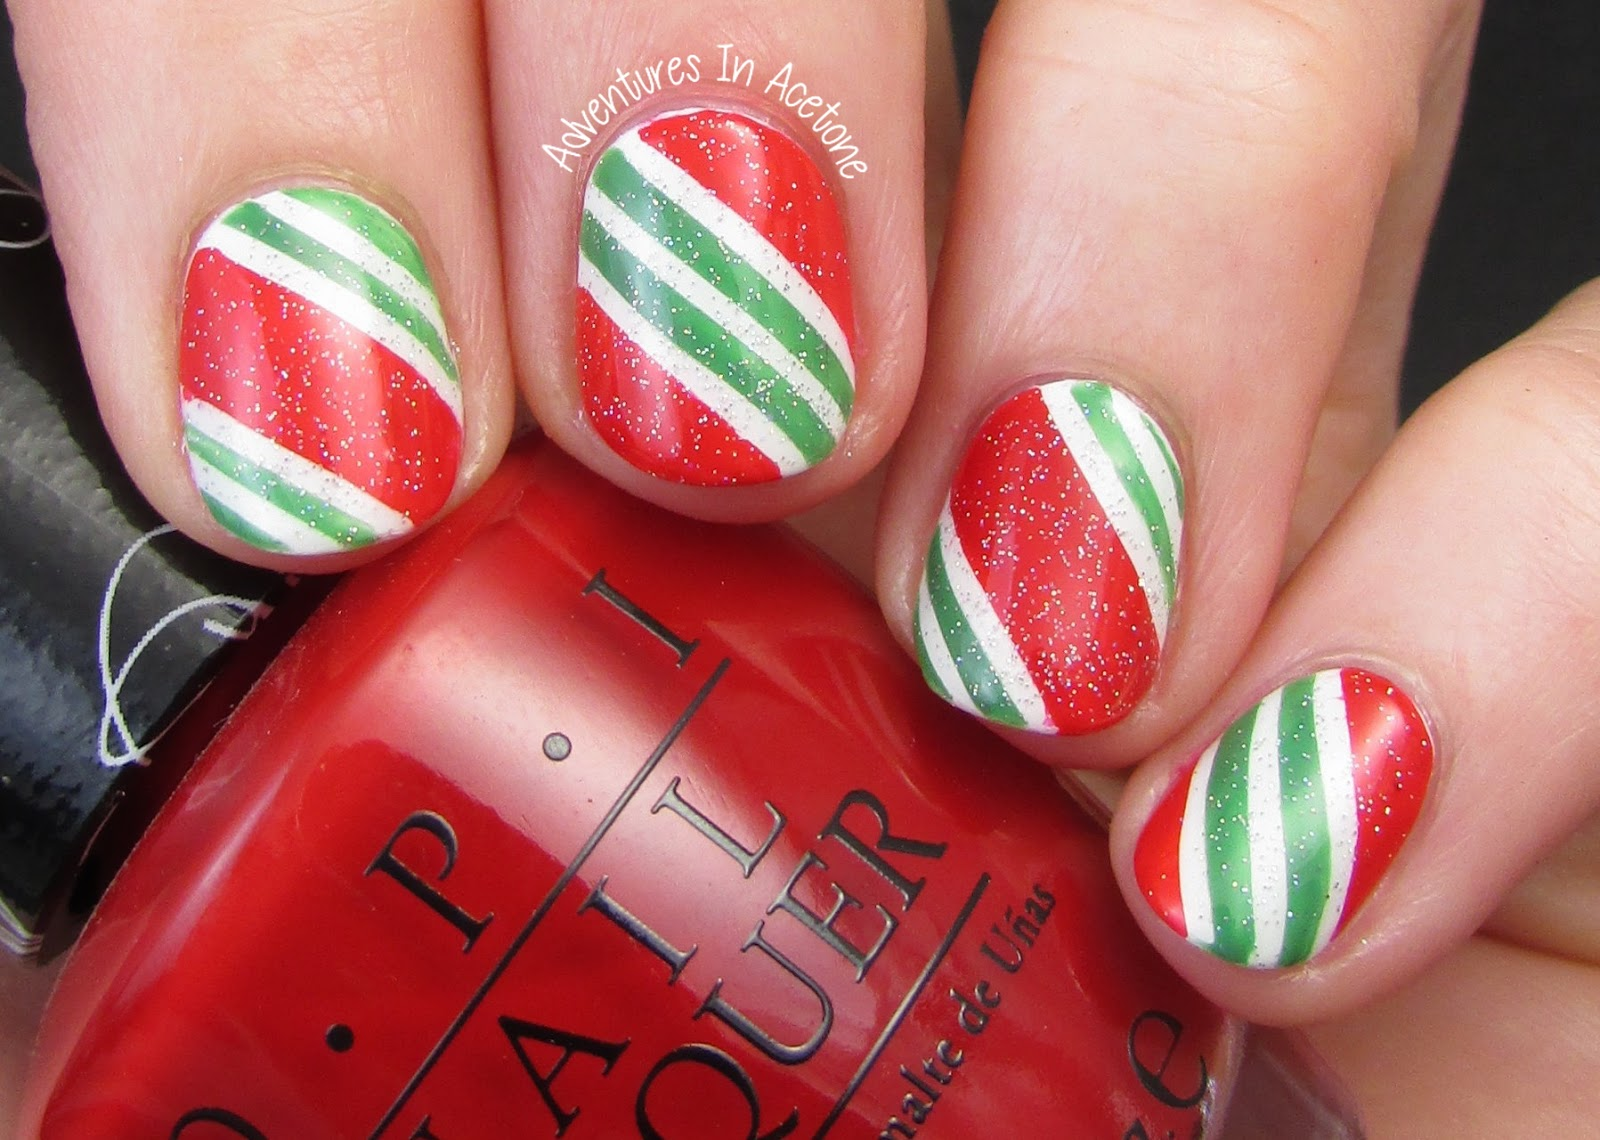 Candy cane nail art adventures in acetone prinsesfo Image collections